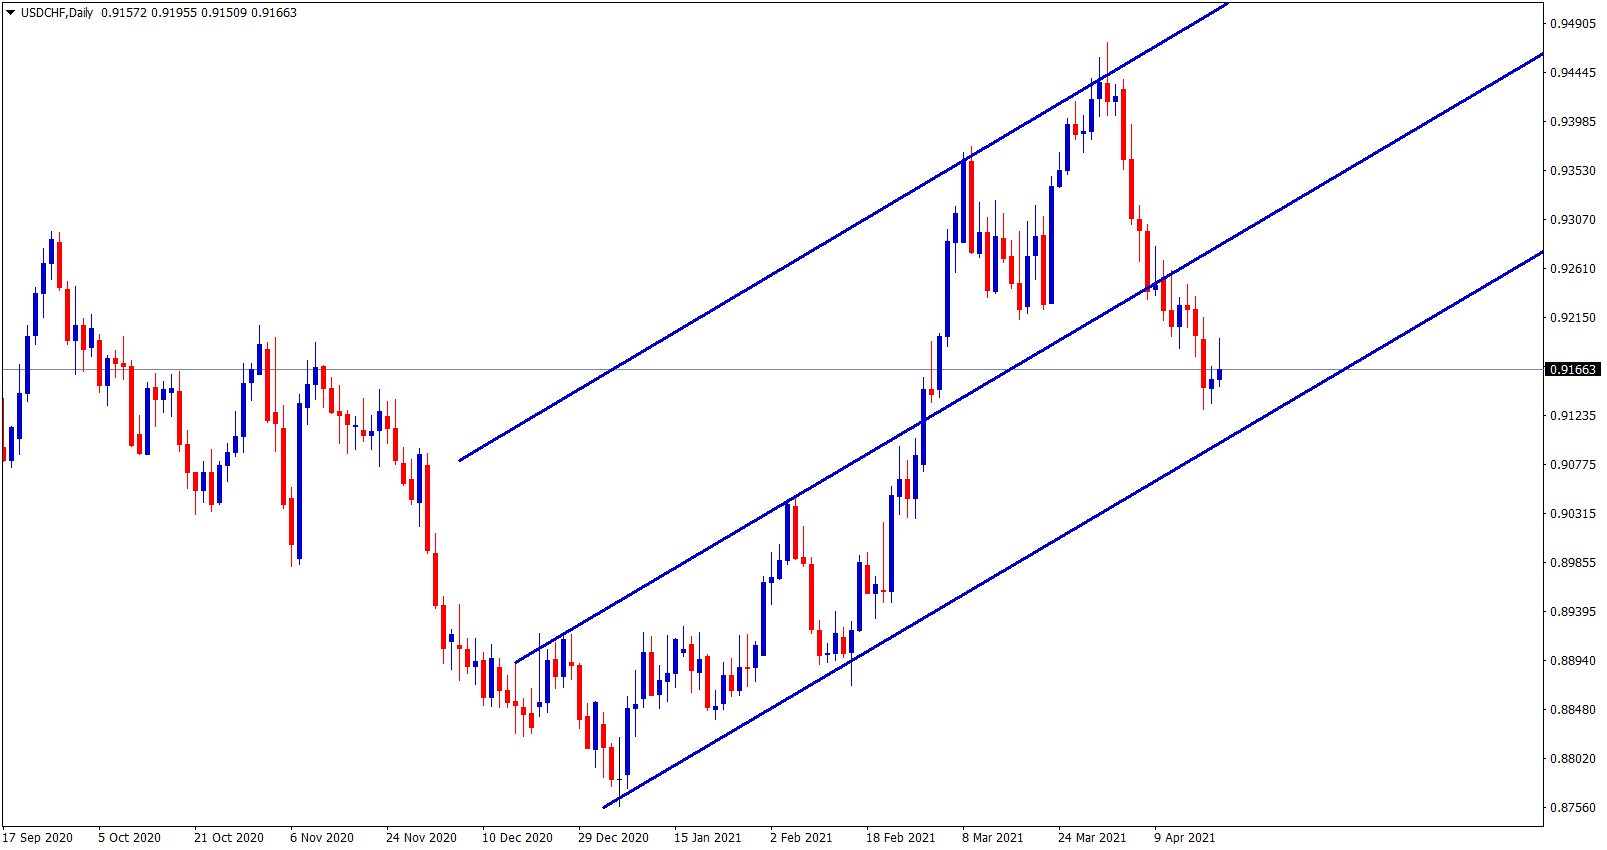 USDCHF is still making correction in an uptrend